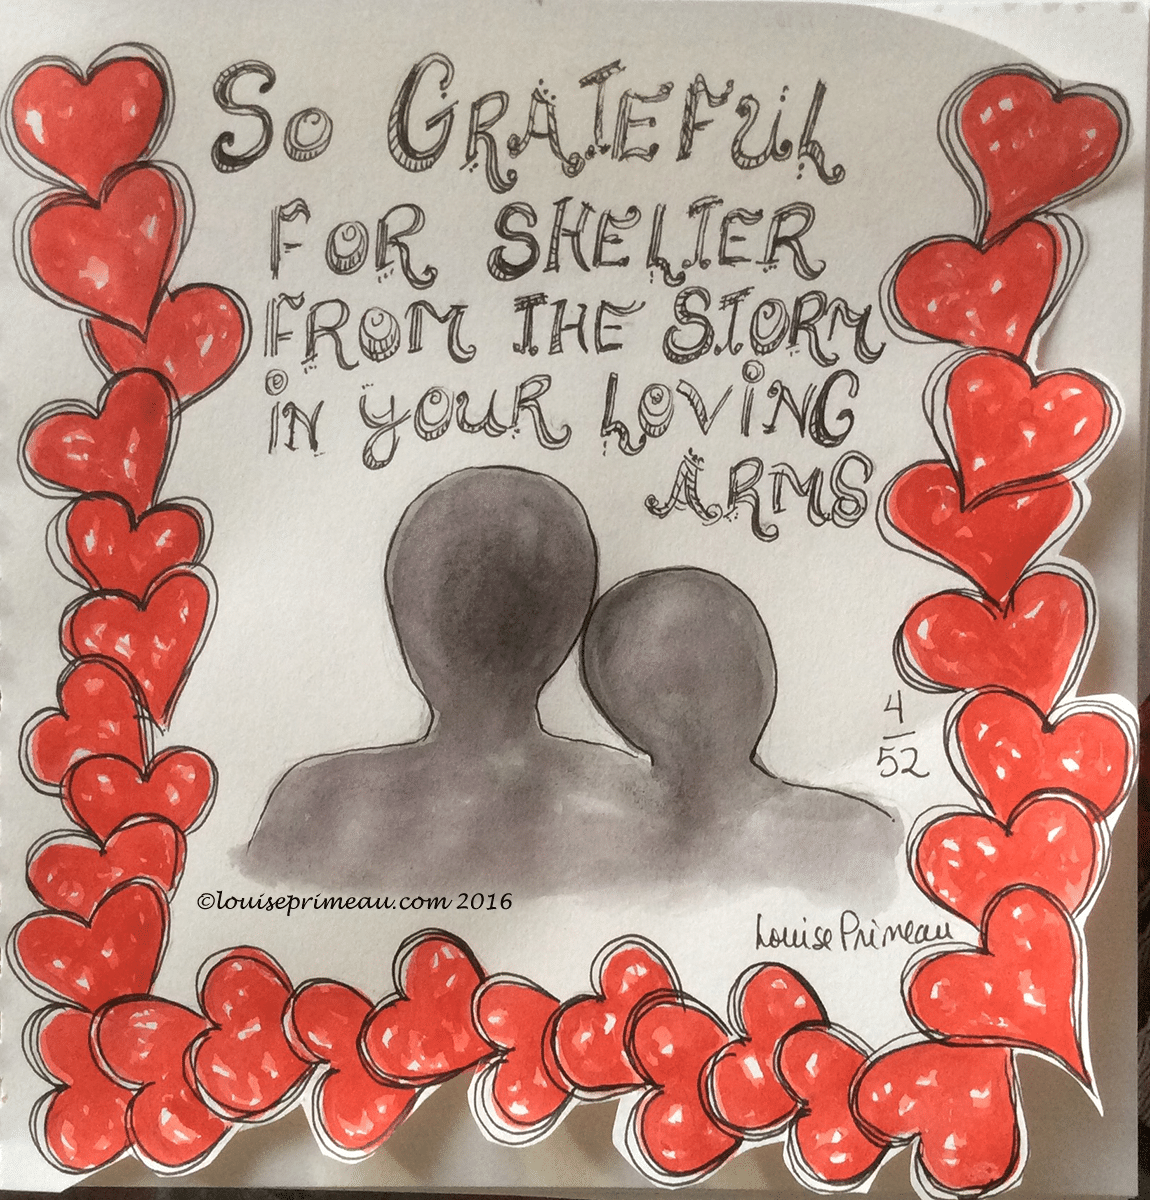 Gratitude Journal entry 4